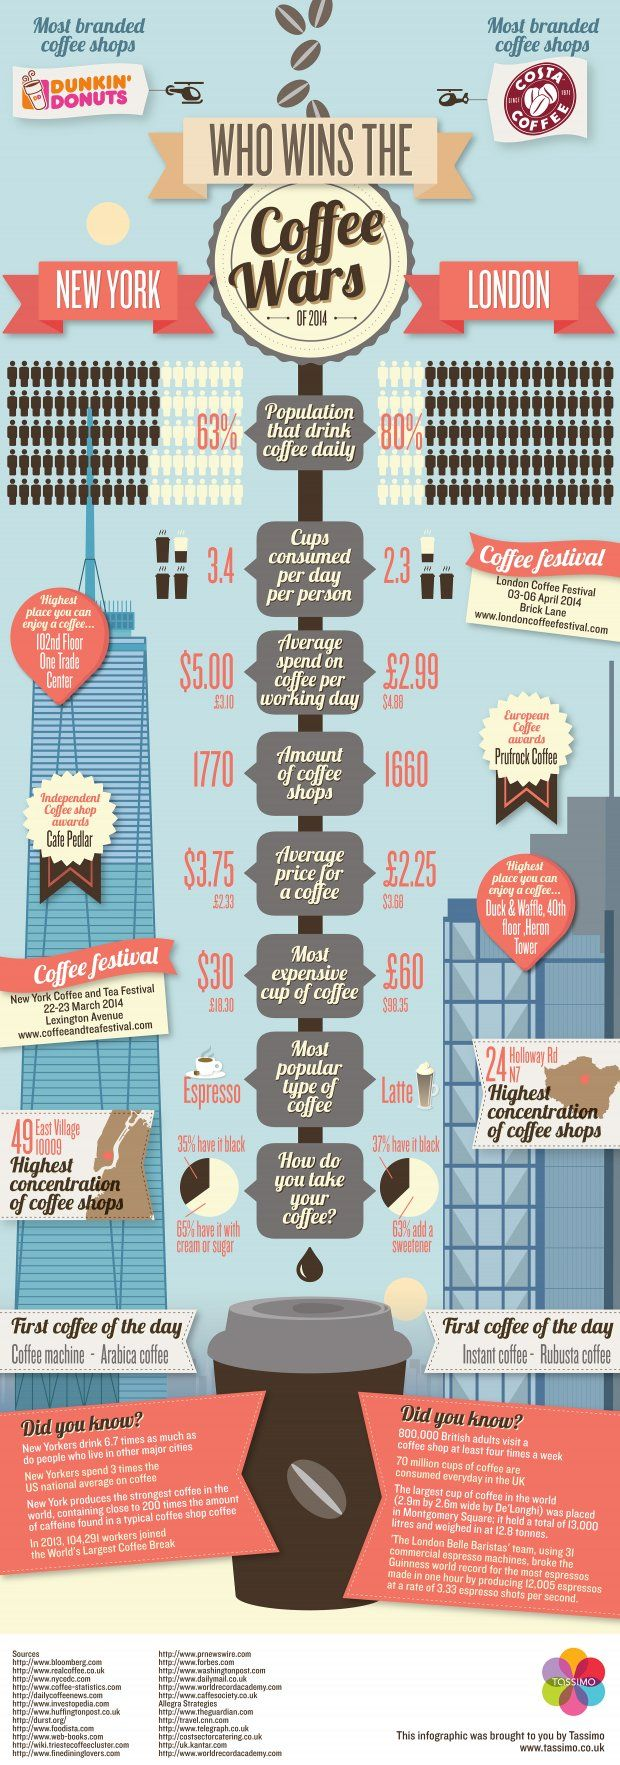 New York vs London, a Detailed Comparison of Coffee Prices & Consumption |Foodbeast